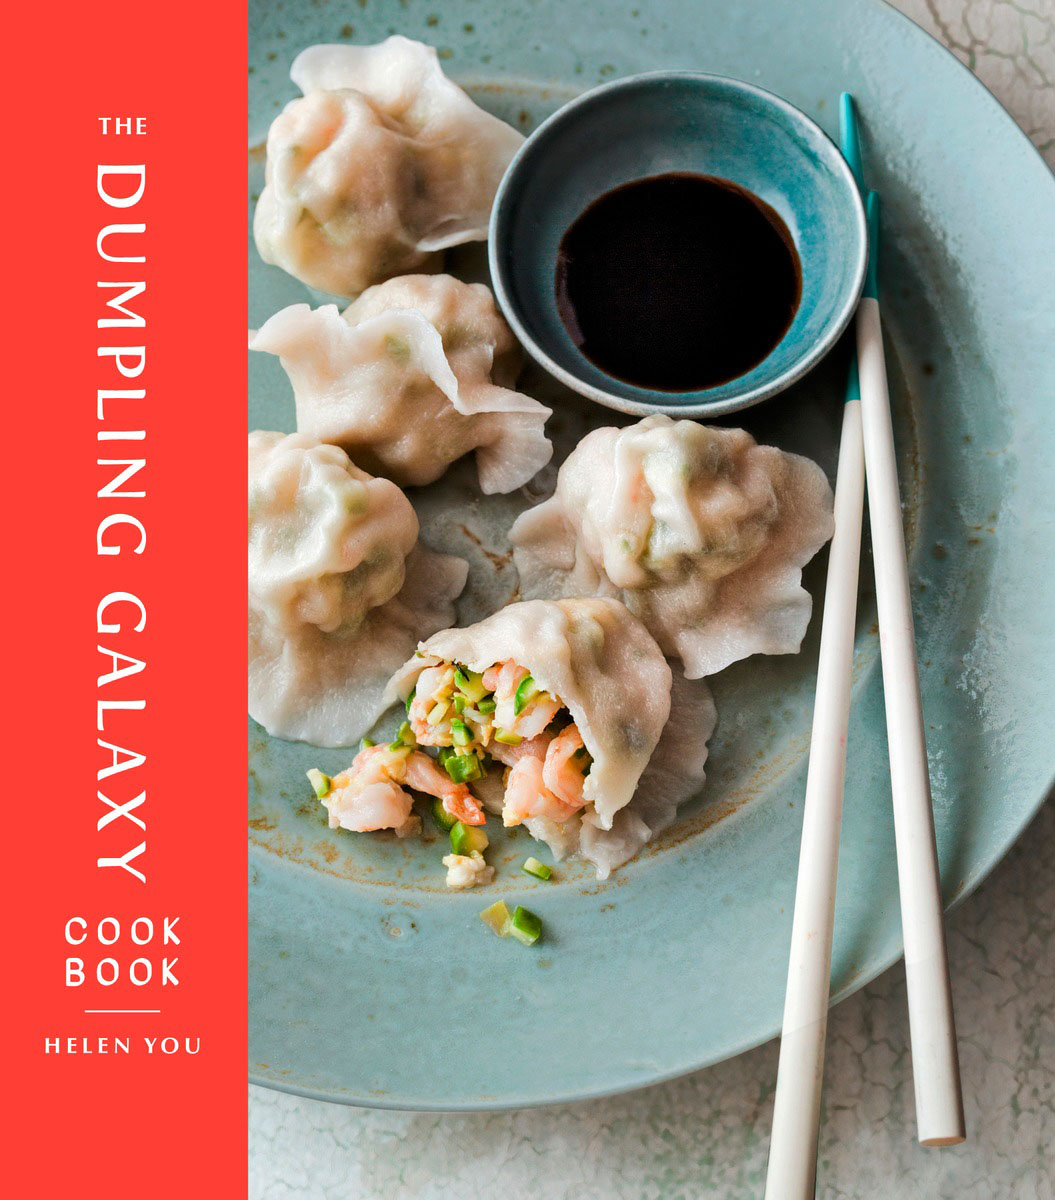 The Dumpling Galaxy Cookbook cntomlv новые кухонные инструменты dumpling jiaozi maker устройство easy diy dumpling mold dumpling wrapper cutter making machine